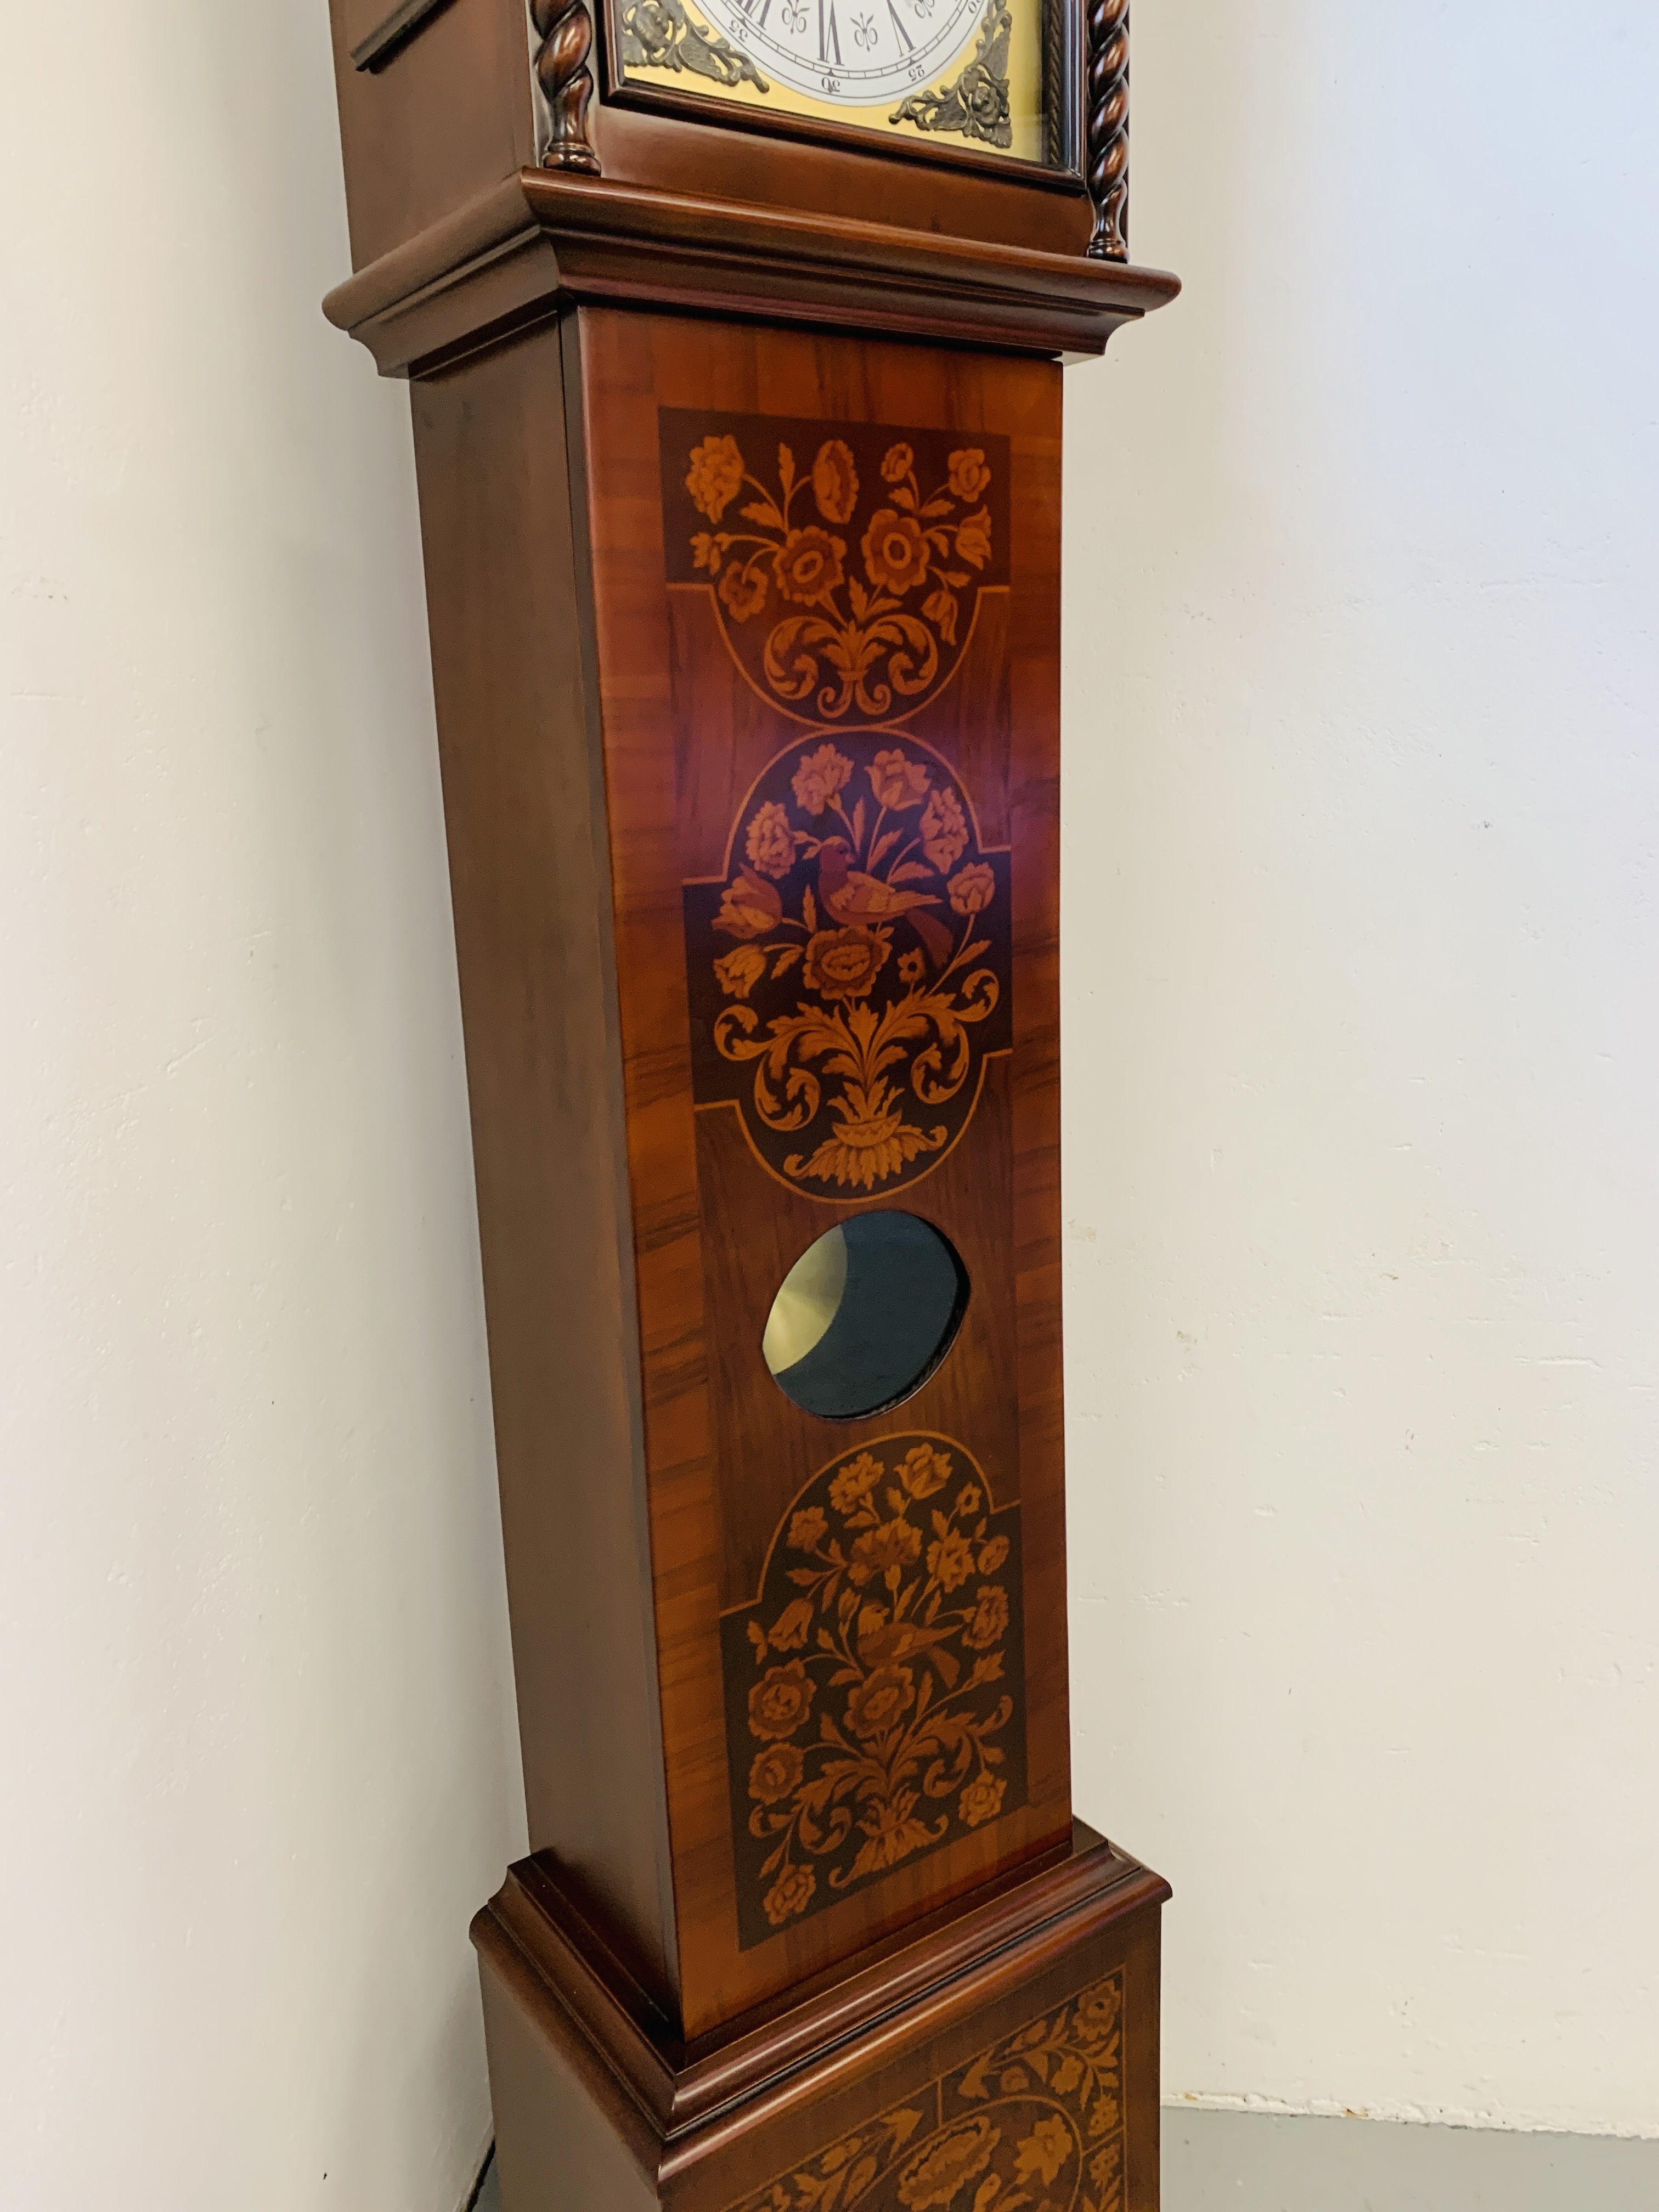 A GOOD QUALITY REPRODUCTION LONG CASE CLOCK - WESTMINSTER CHIME - SOLD AS SEEN - Image 6 of 19